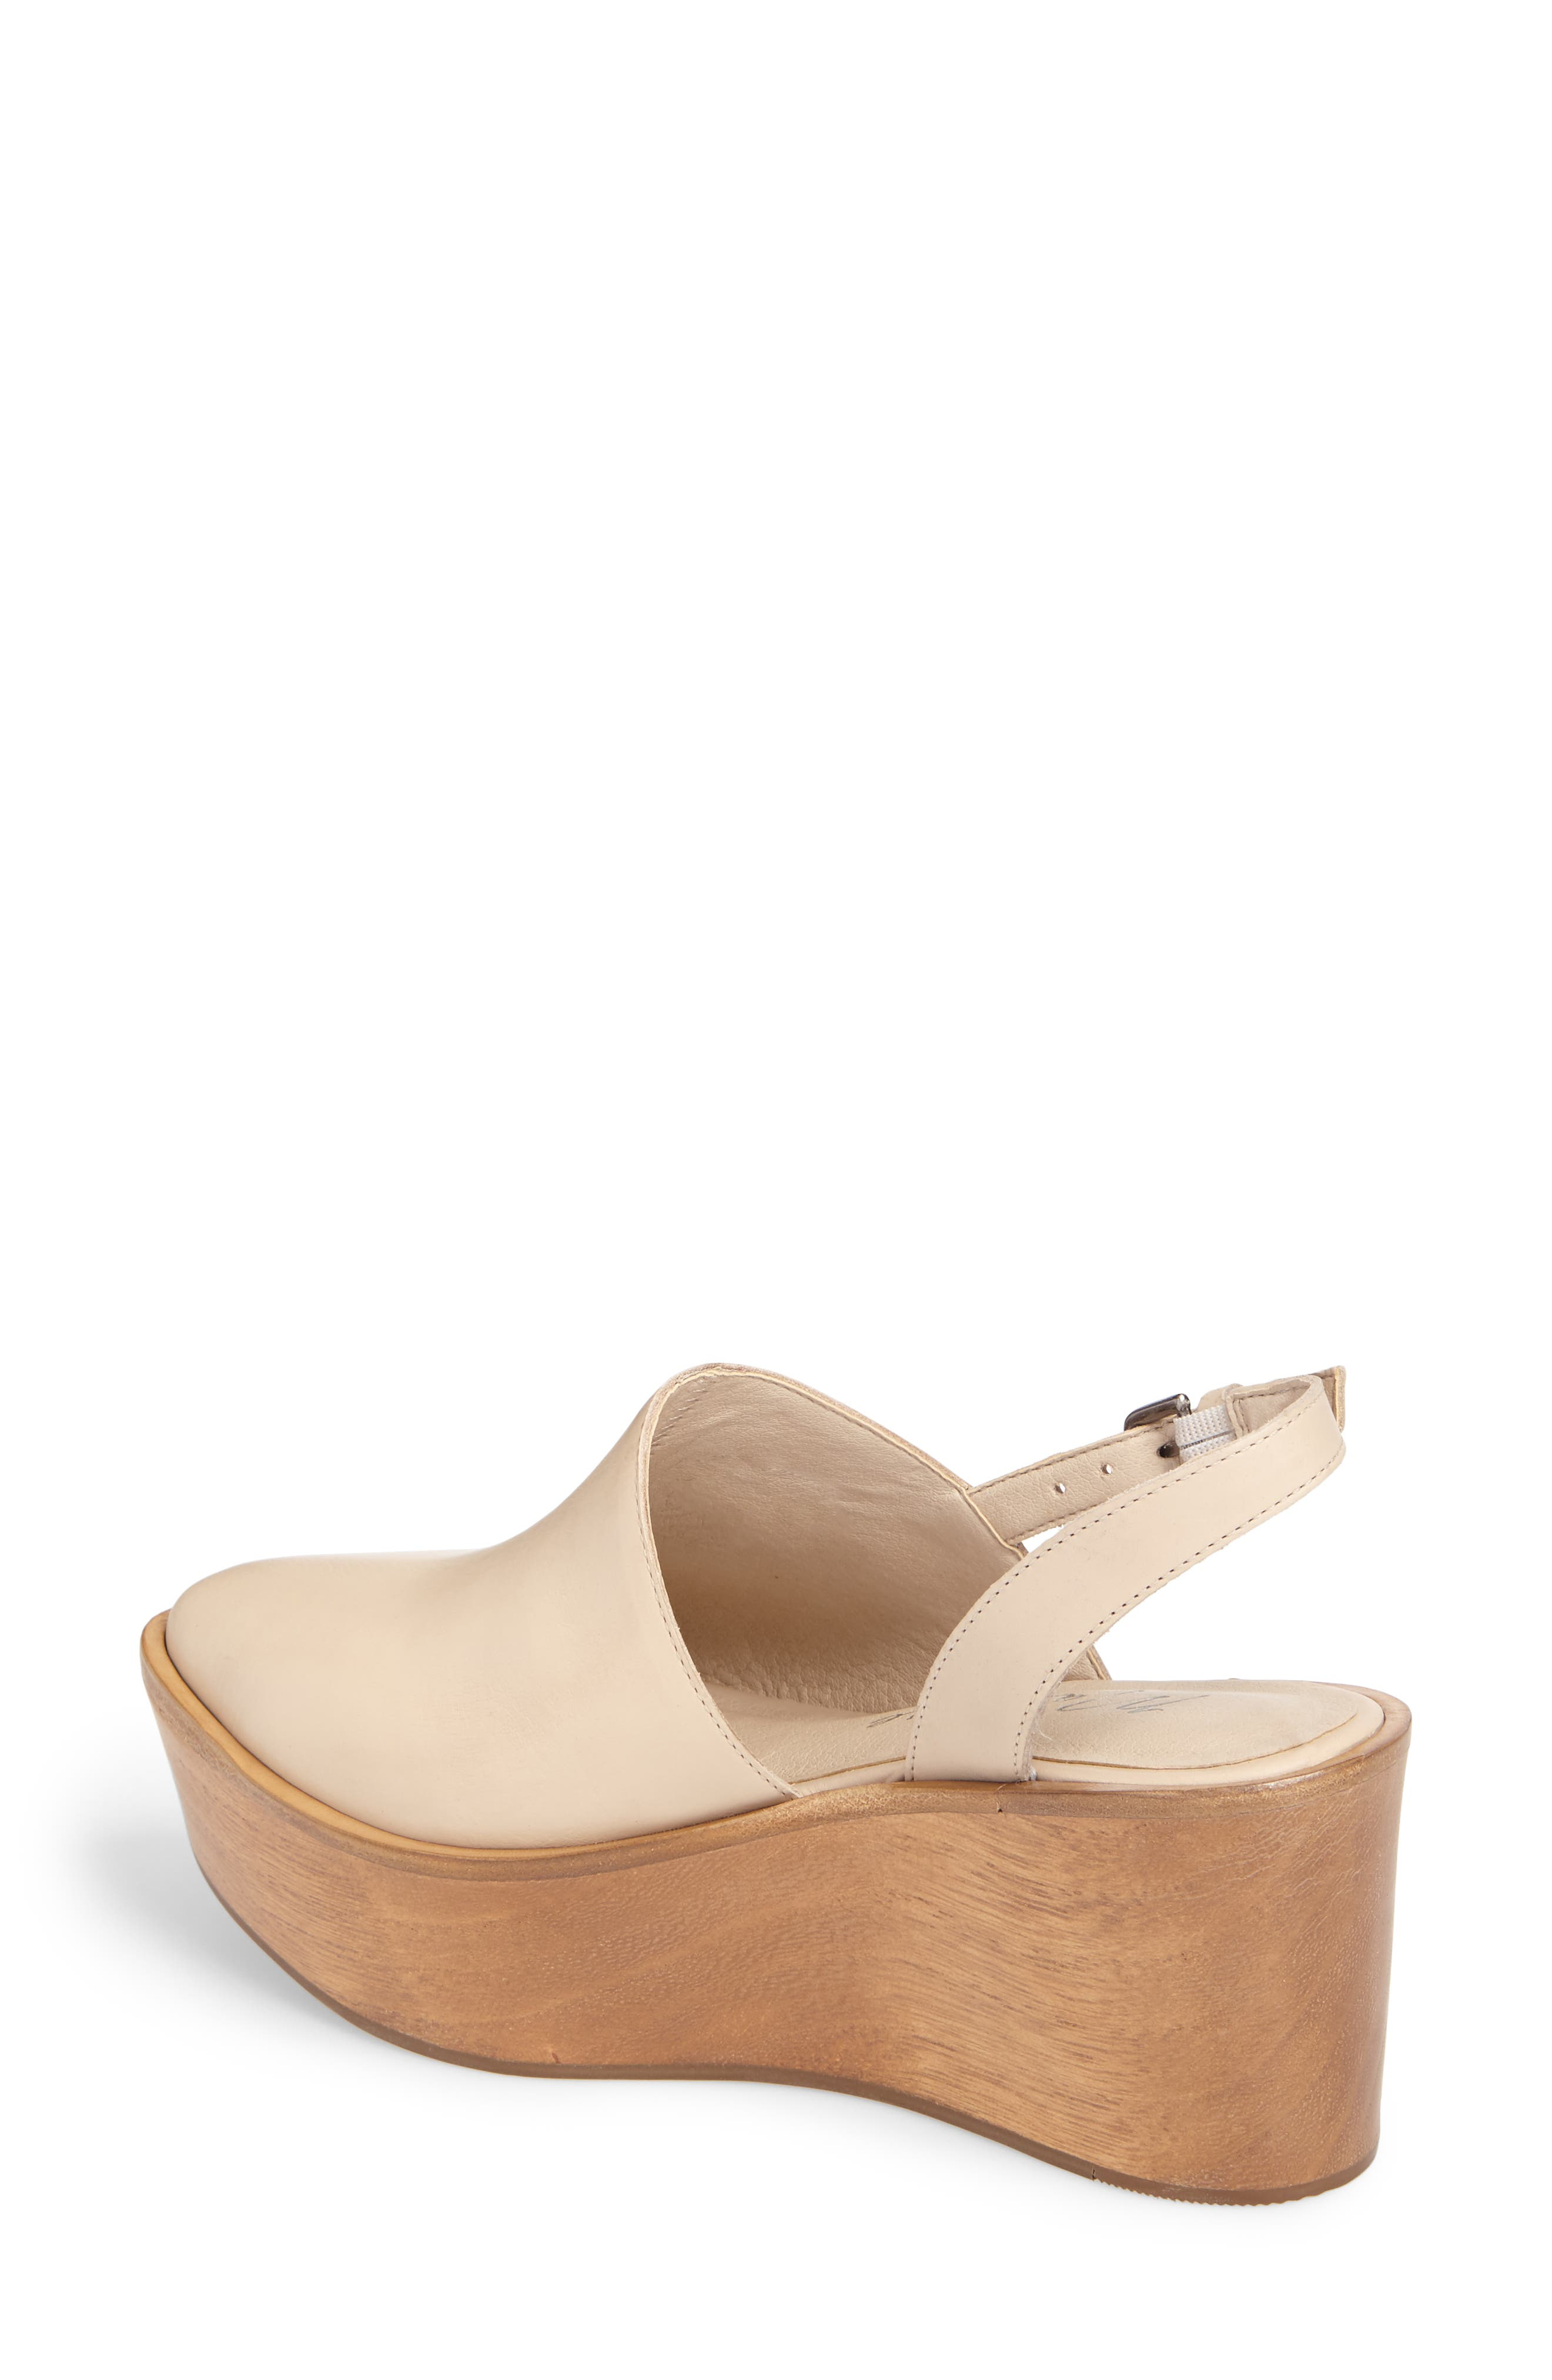 Eyals Slingback Platform Wedge Sandal,                             Alternate thumbnail 2, color,                             NATURAL LEATHER